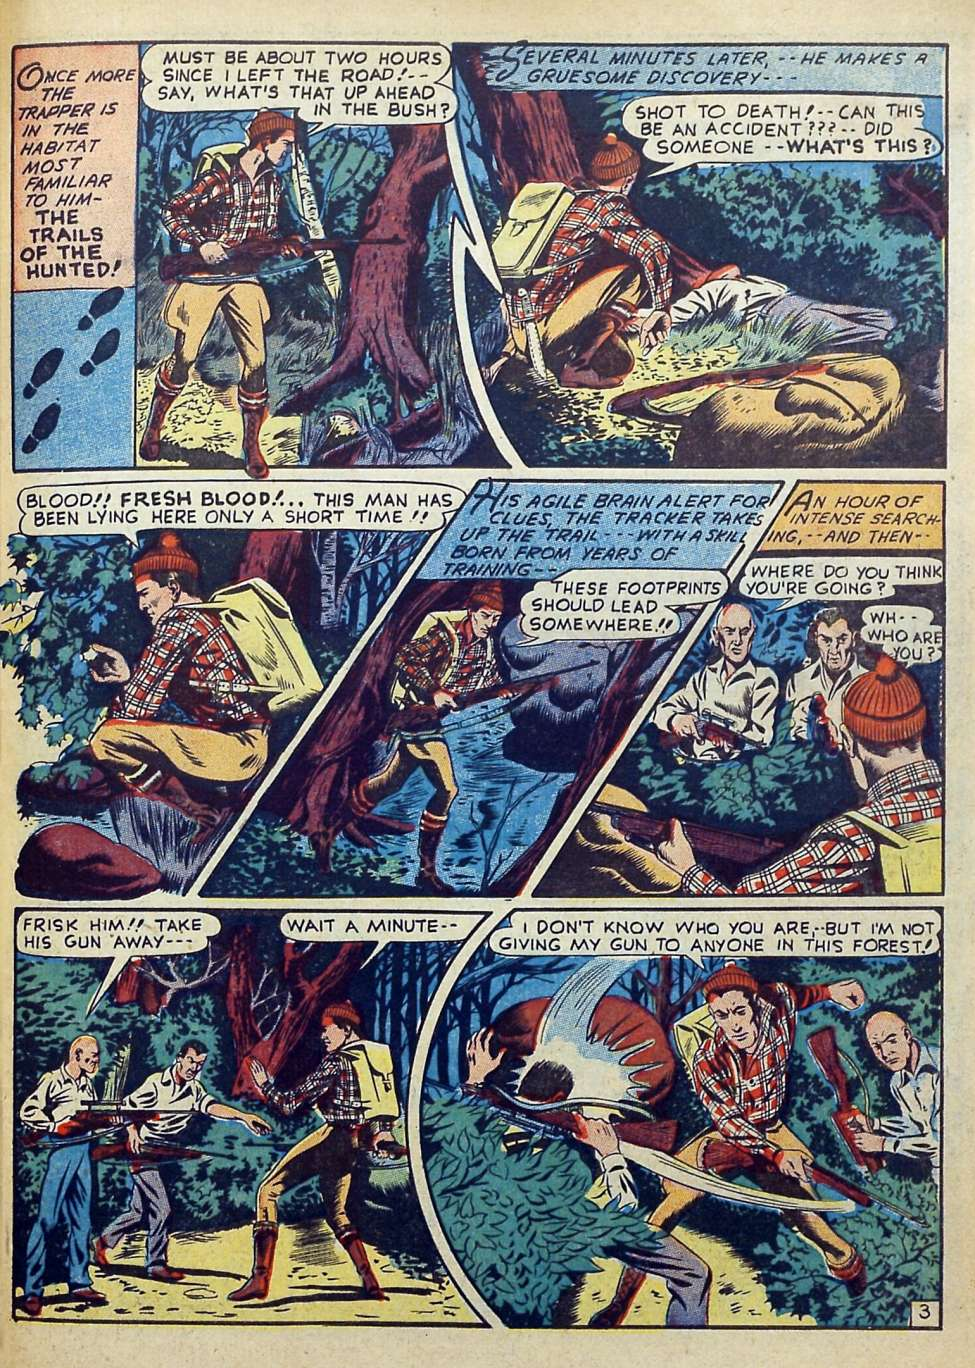 Suspense Comics #3 from 1944 47